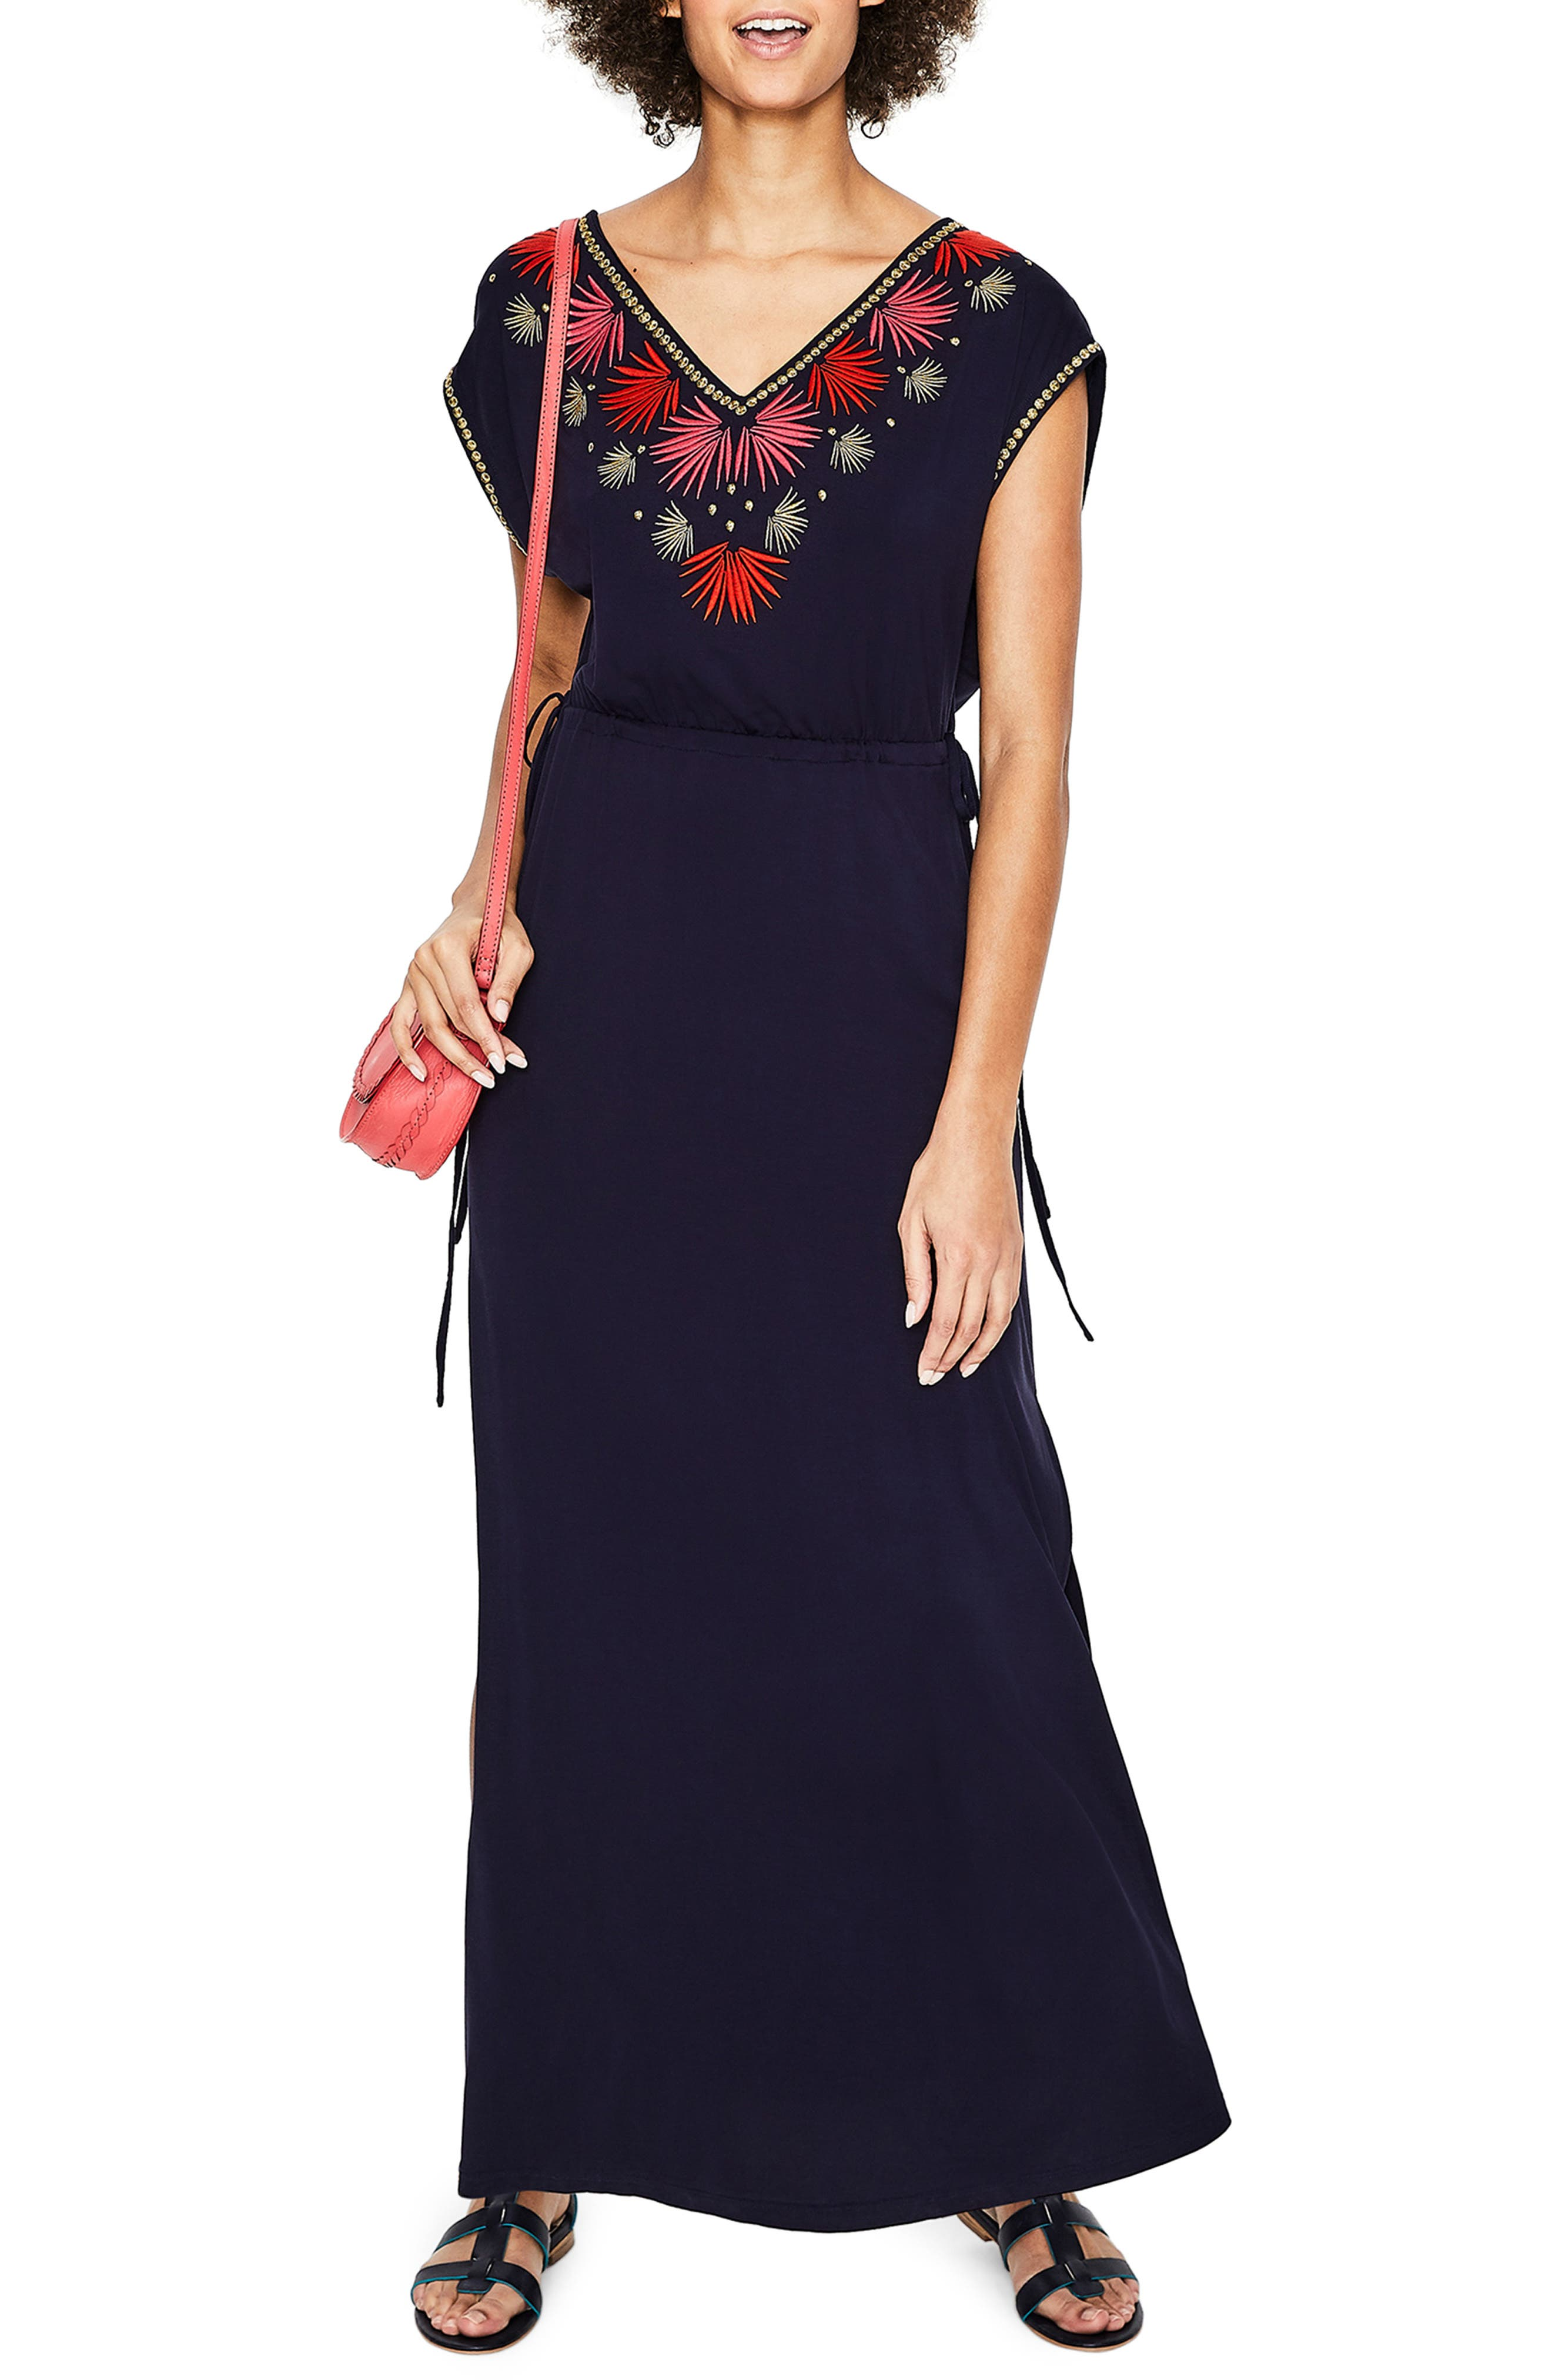 Boden Marcia Embroidery Detail Maxi Dress, 8 (similar to 16W-18W) - Blue